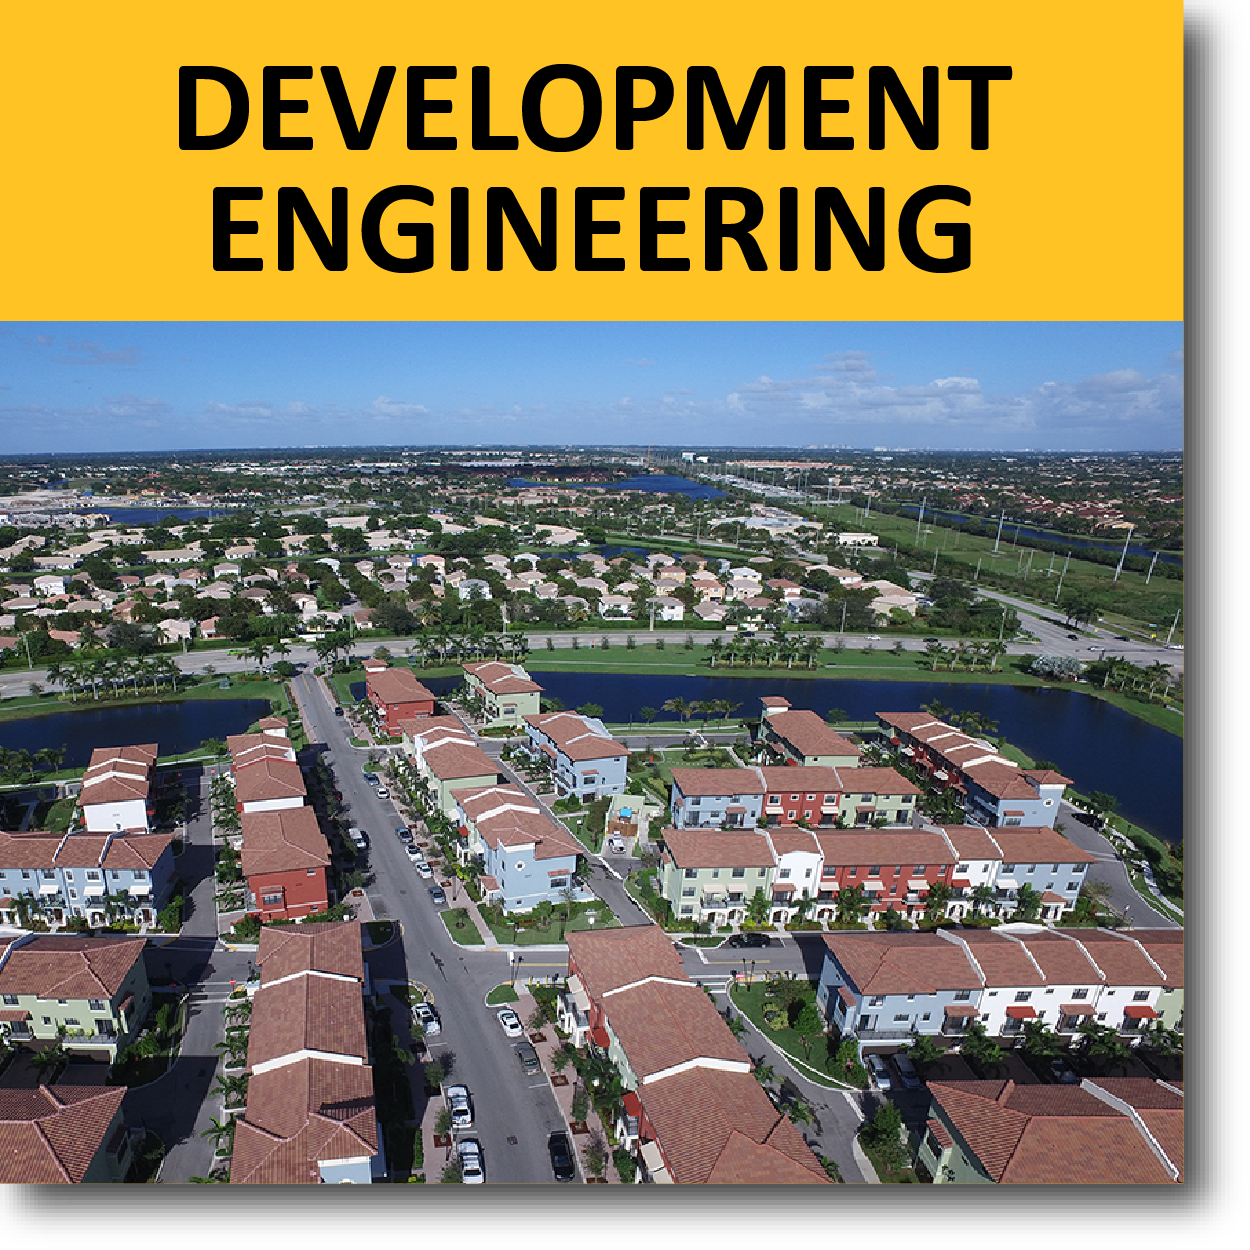 Development Engineering